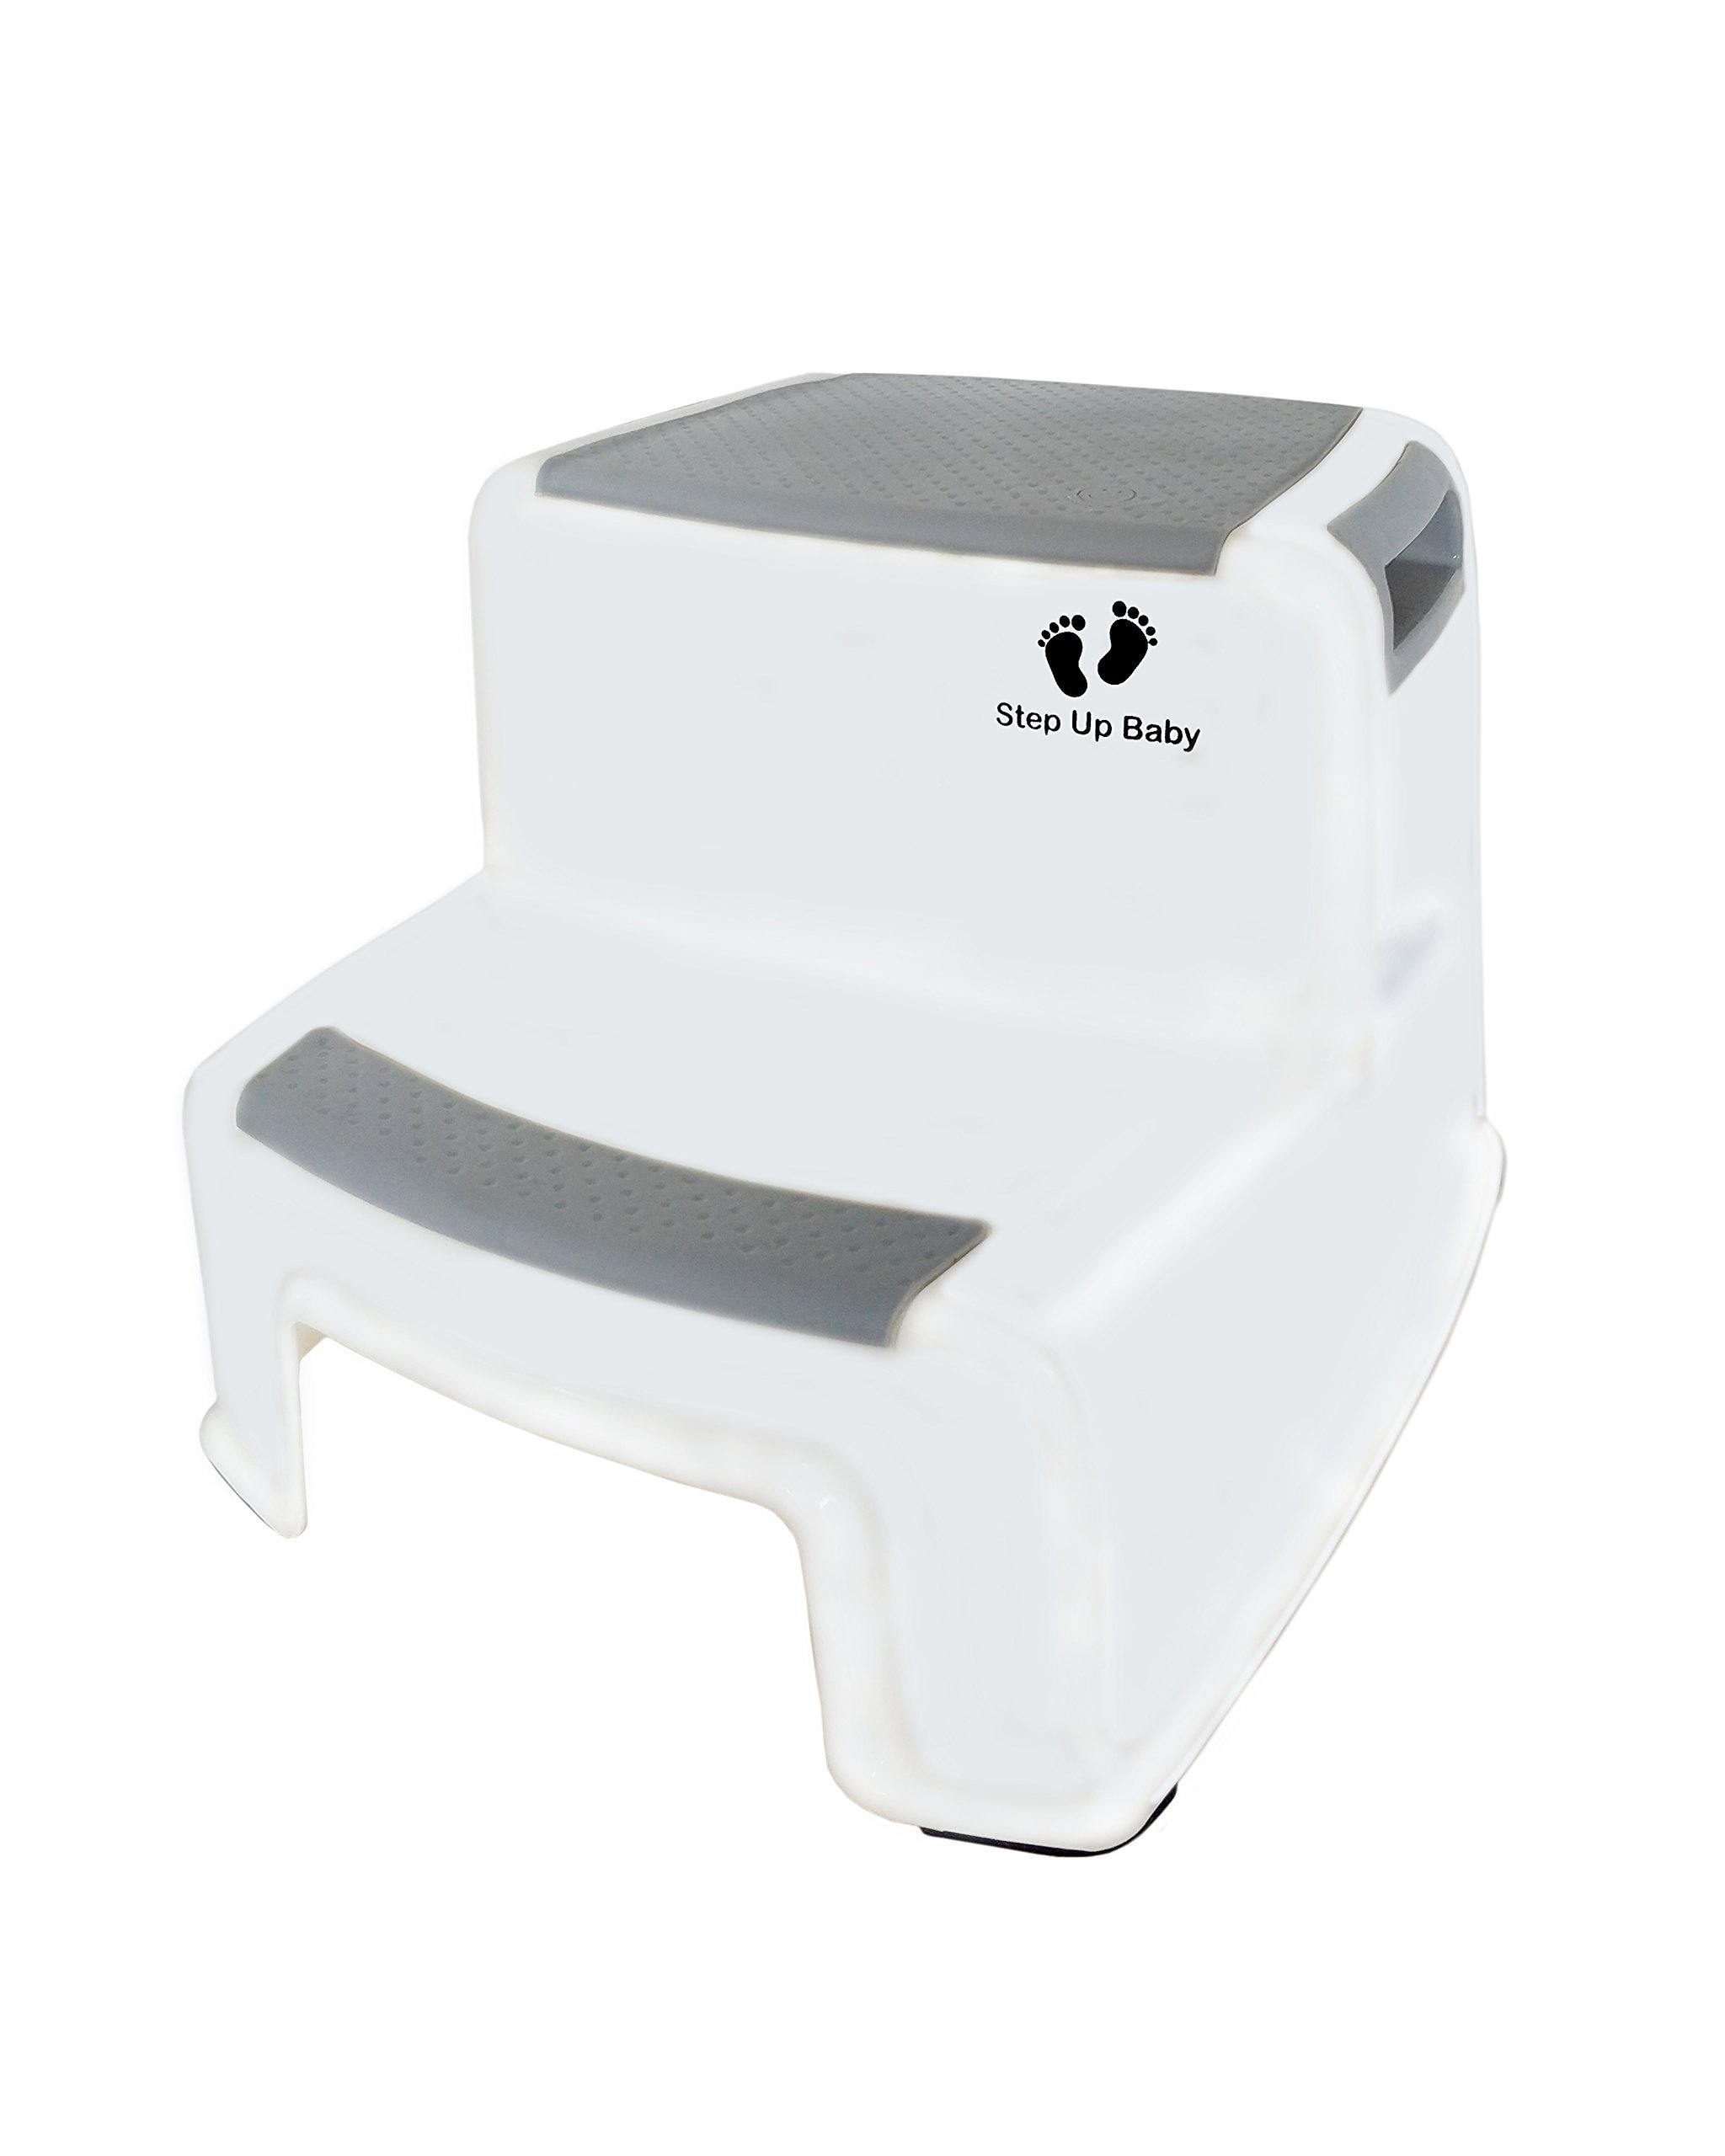 Dual Height Step Stool For Toddlers By Step Up Baby: Potty Training Two-Level Stepping Stool For Kids - Multipurpose Two-Step Stool With Anti-Slip Pads - Sturdy Bathroom And Kitchen Step Stool